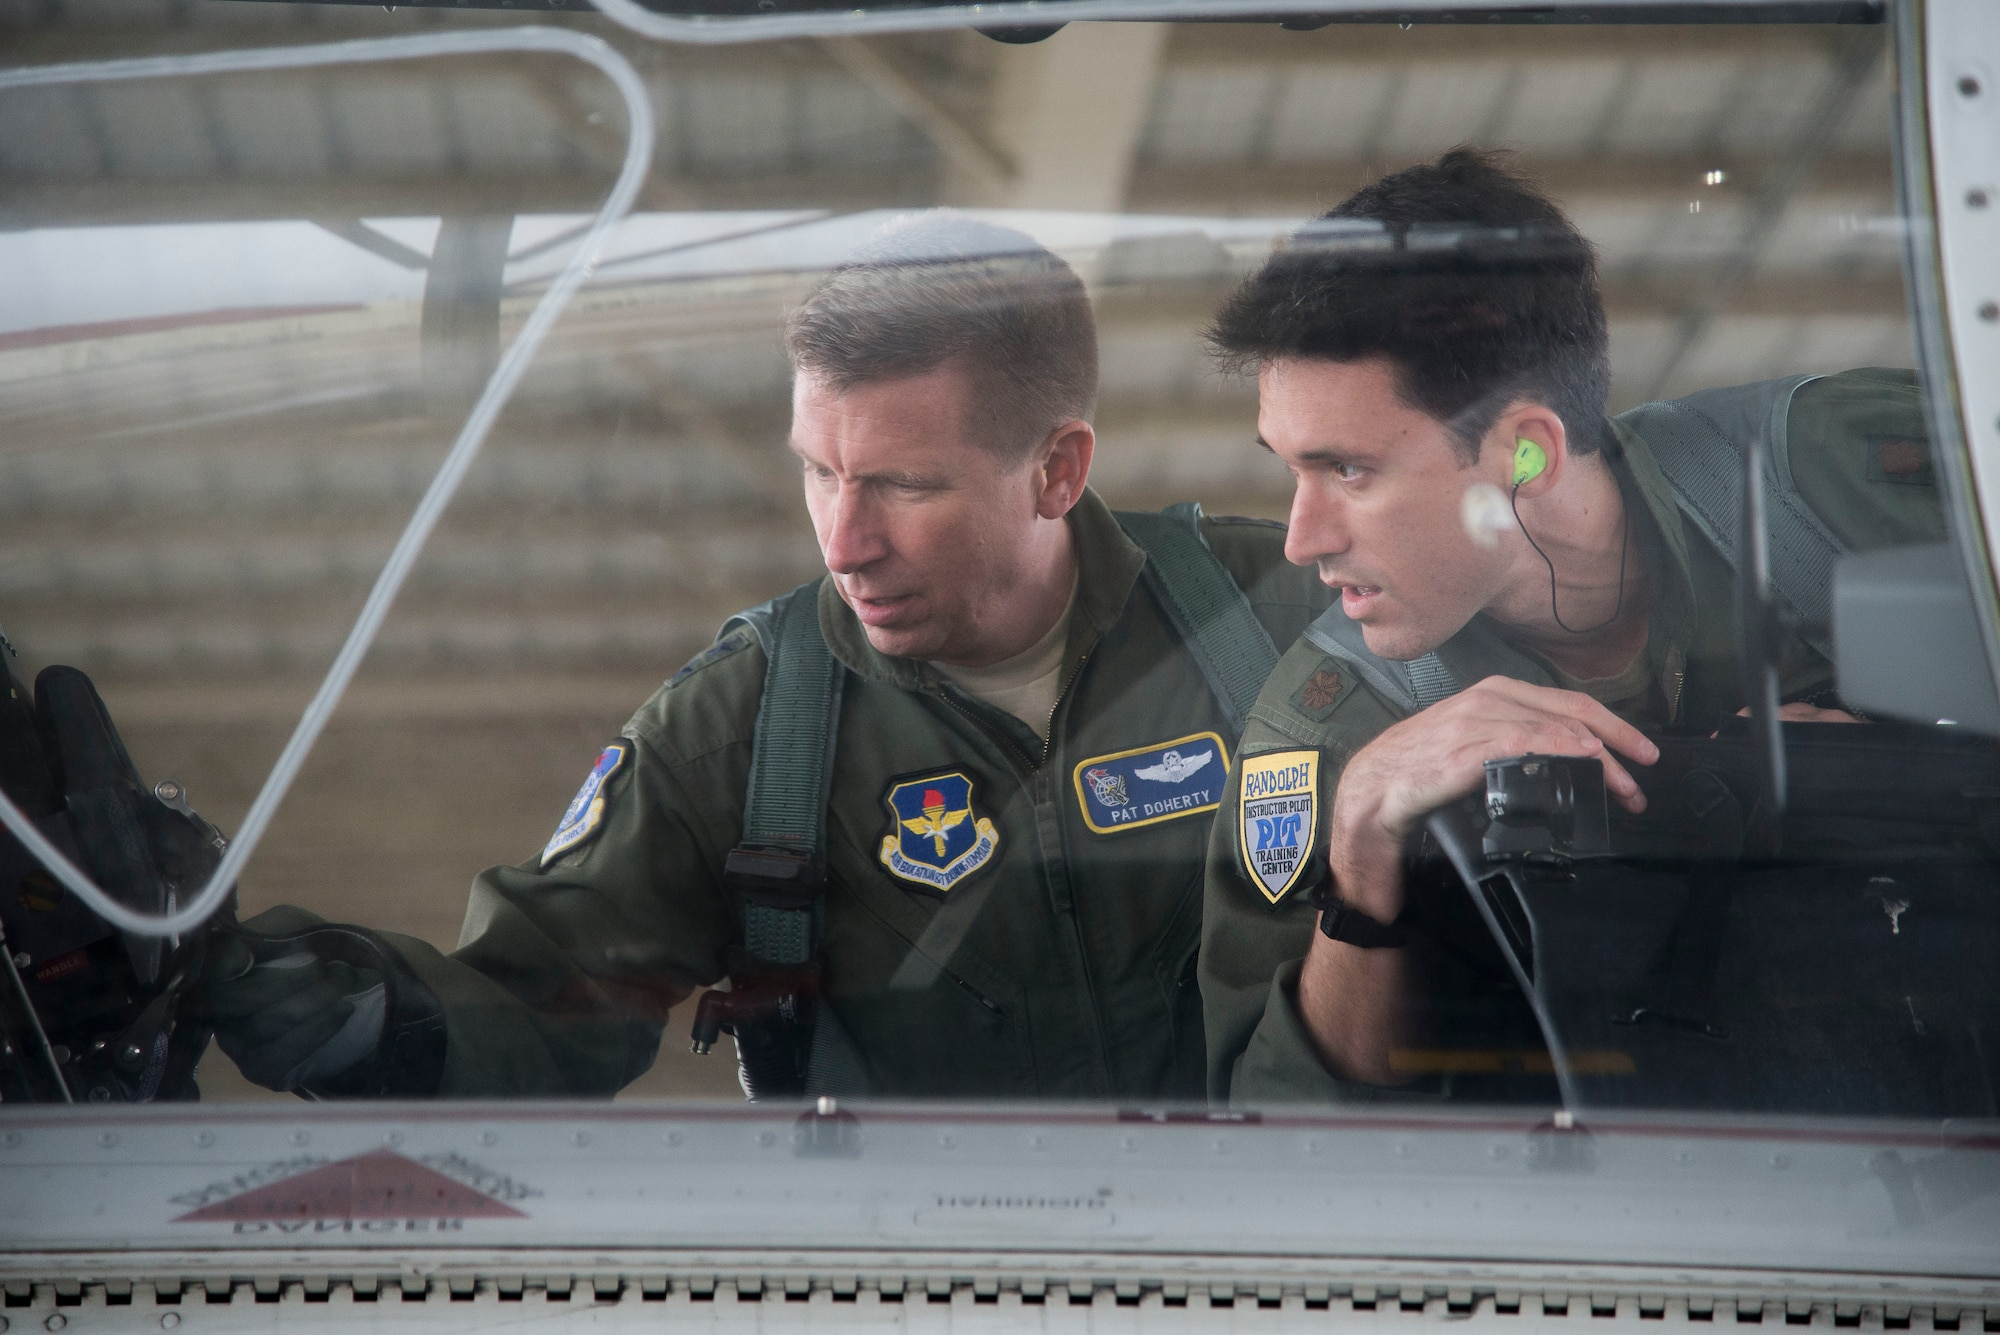 U.S. Air Force Maj. Gen. Patrick Doherty, 19th Air Force commander, and Maj. Lincoln Olsen, T-6 instructor pilot, conduct a T-6 Texan II safety check before conducting an operational demonstration at Joint Base San Antonio-Randolph, Texas, Feb. 21, 2018. Doherty was on the flight line getting test data first-hand during the command-wide T-6 operational pause. (U.S. Air Force photo by Sean Worrell)